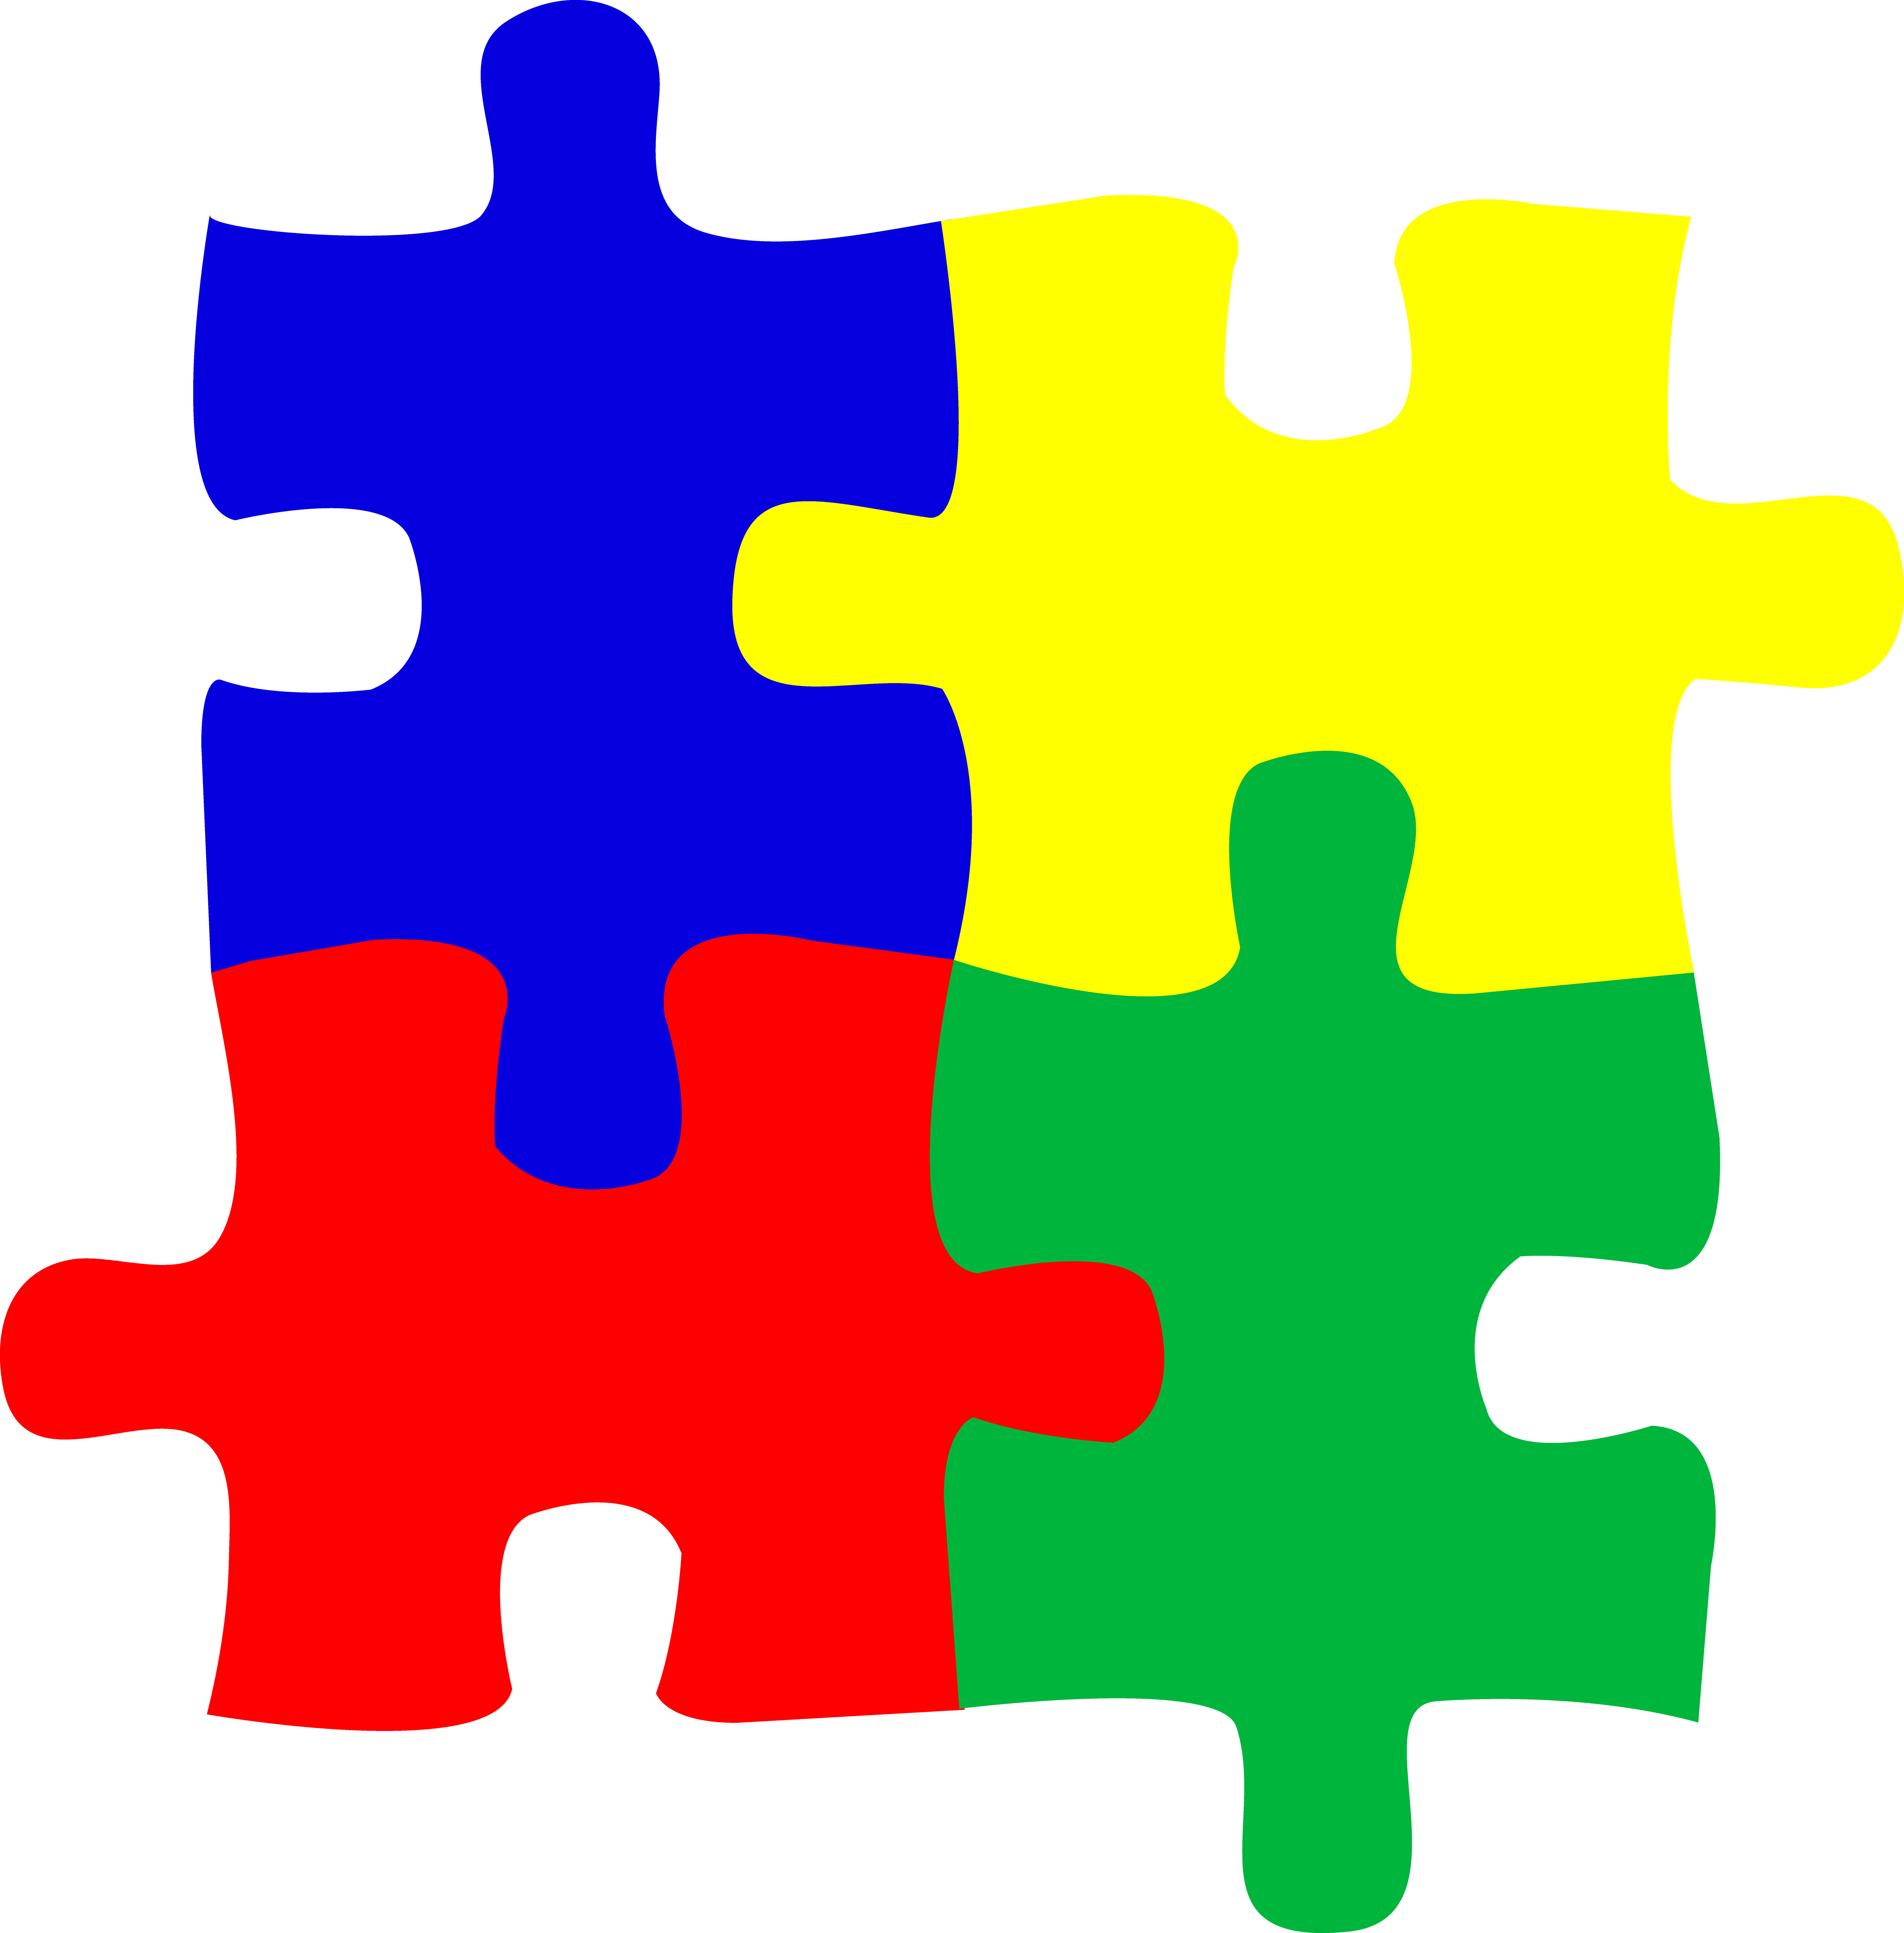 Puzzle Clip Art Powerpoint Free | Clipart library - Free Clipart Images